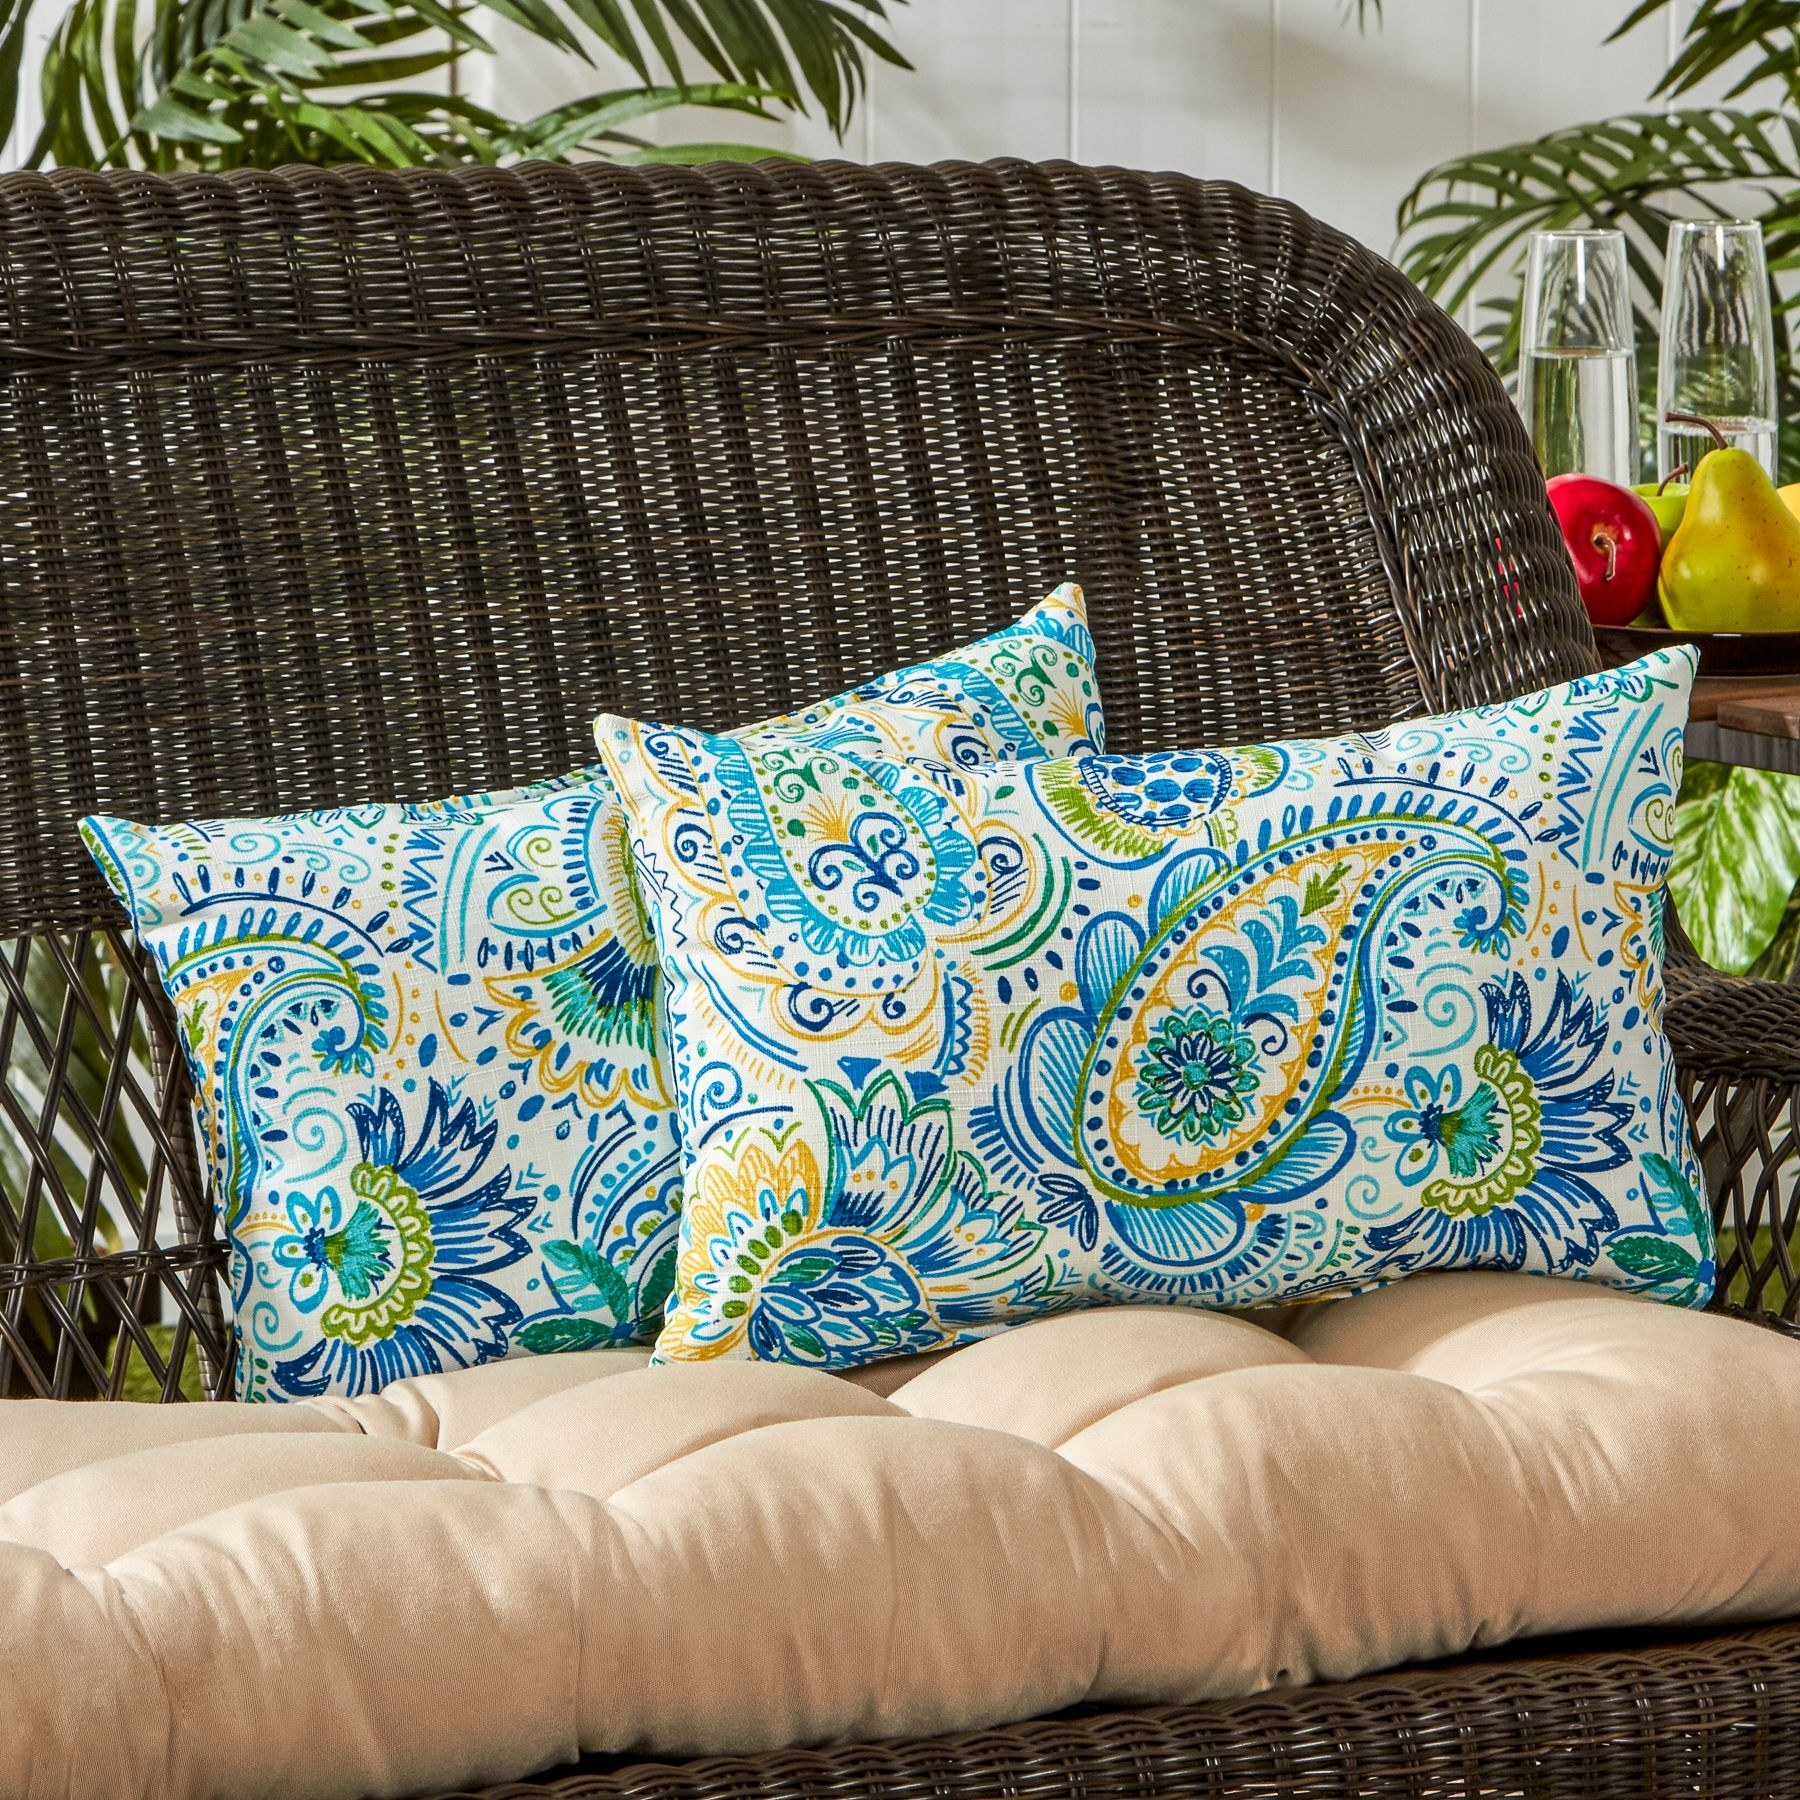 A set of blue, green, and yellow paisley outdoor pillows